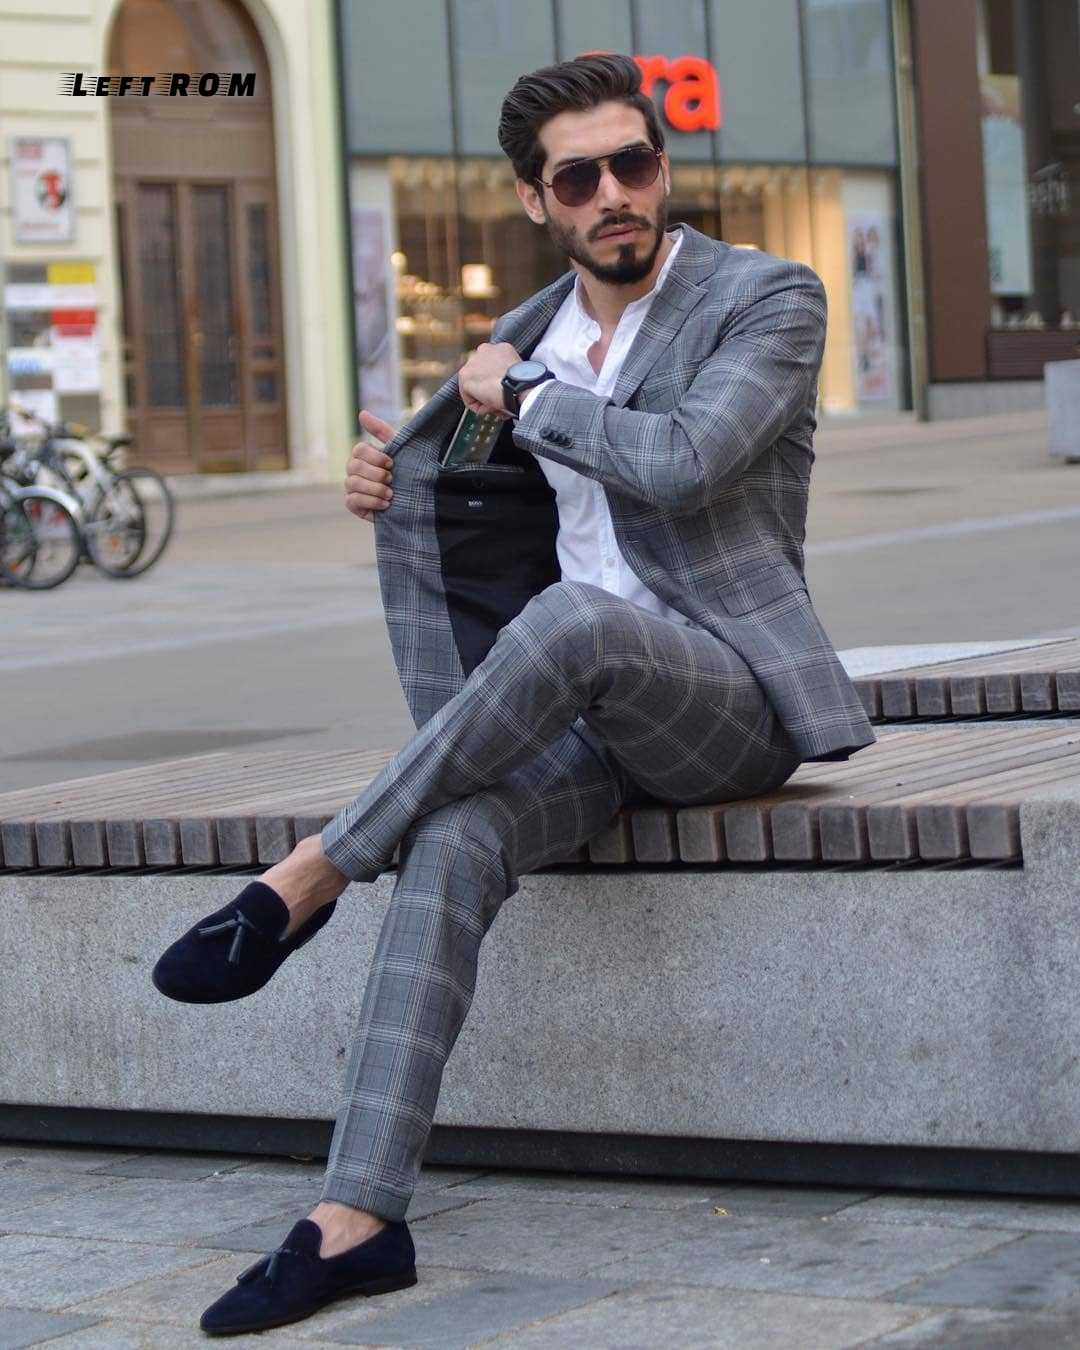 2019 Spring Suit Suits Slim Plaid British Suit Three-piece Suit Two Colors Apricot and Gray Plaid. Size:M,L,XL,2XL,3XL